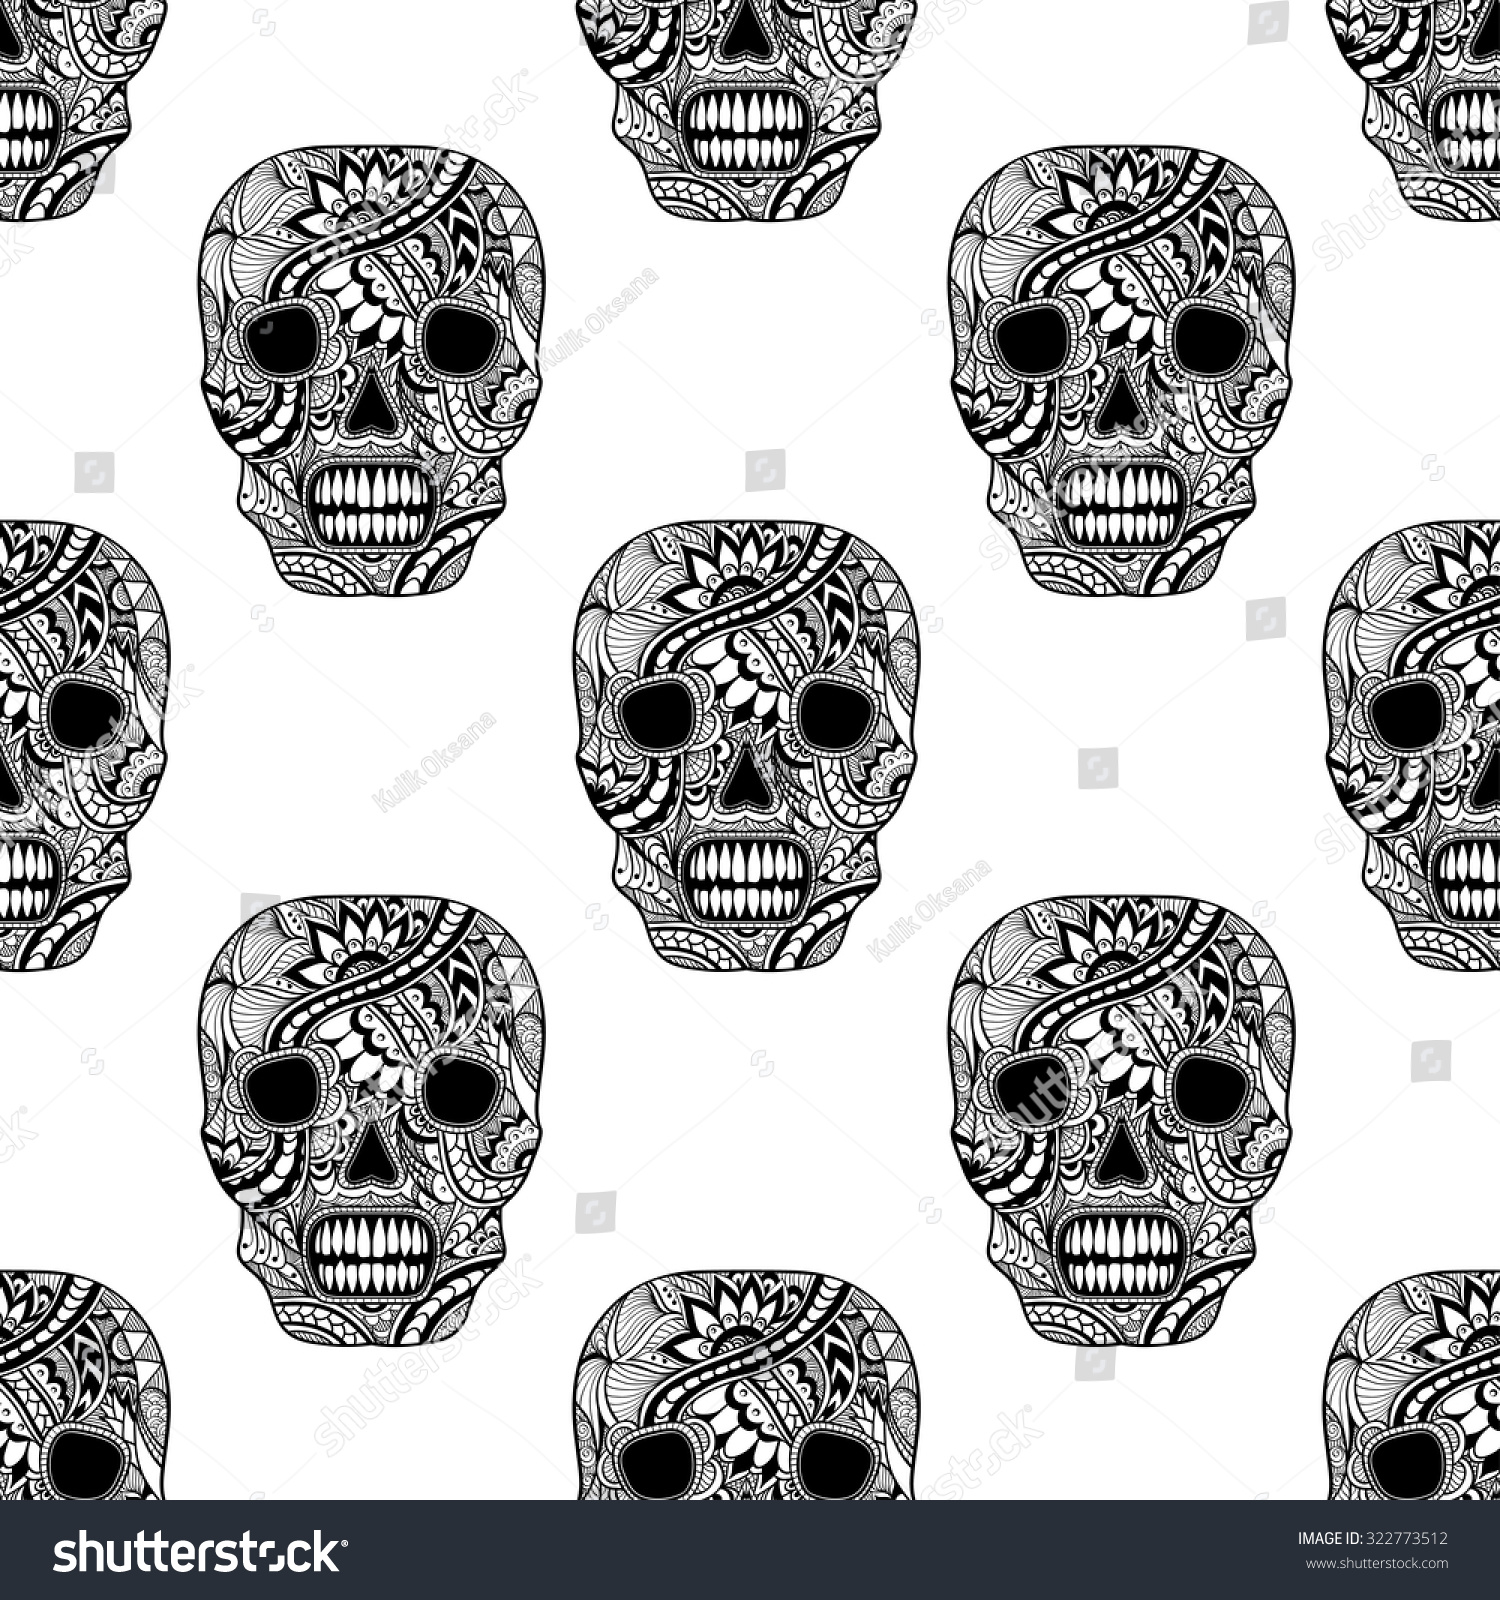 Seamless Pattern Decorate Skull Painted Ornament Stock Vector